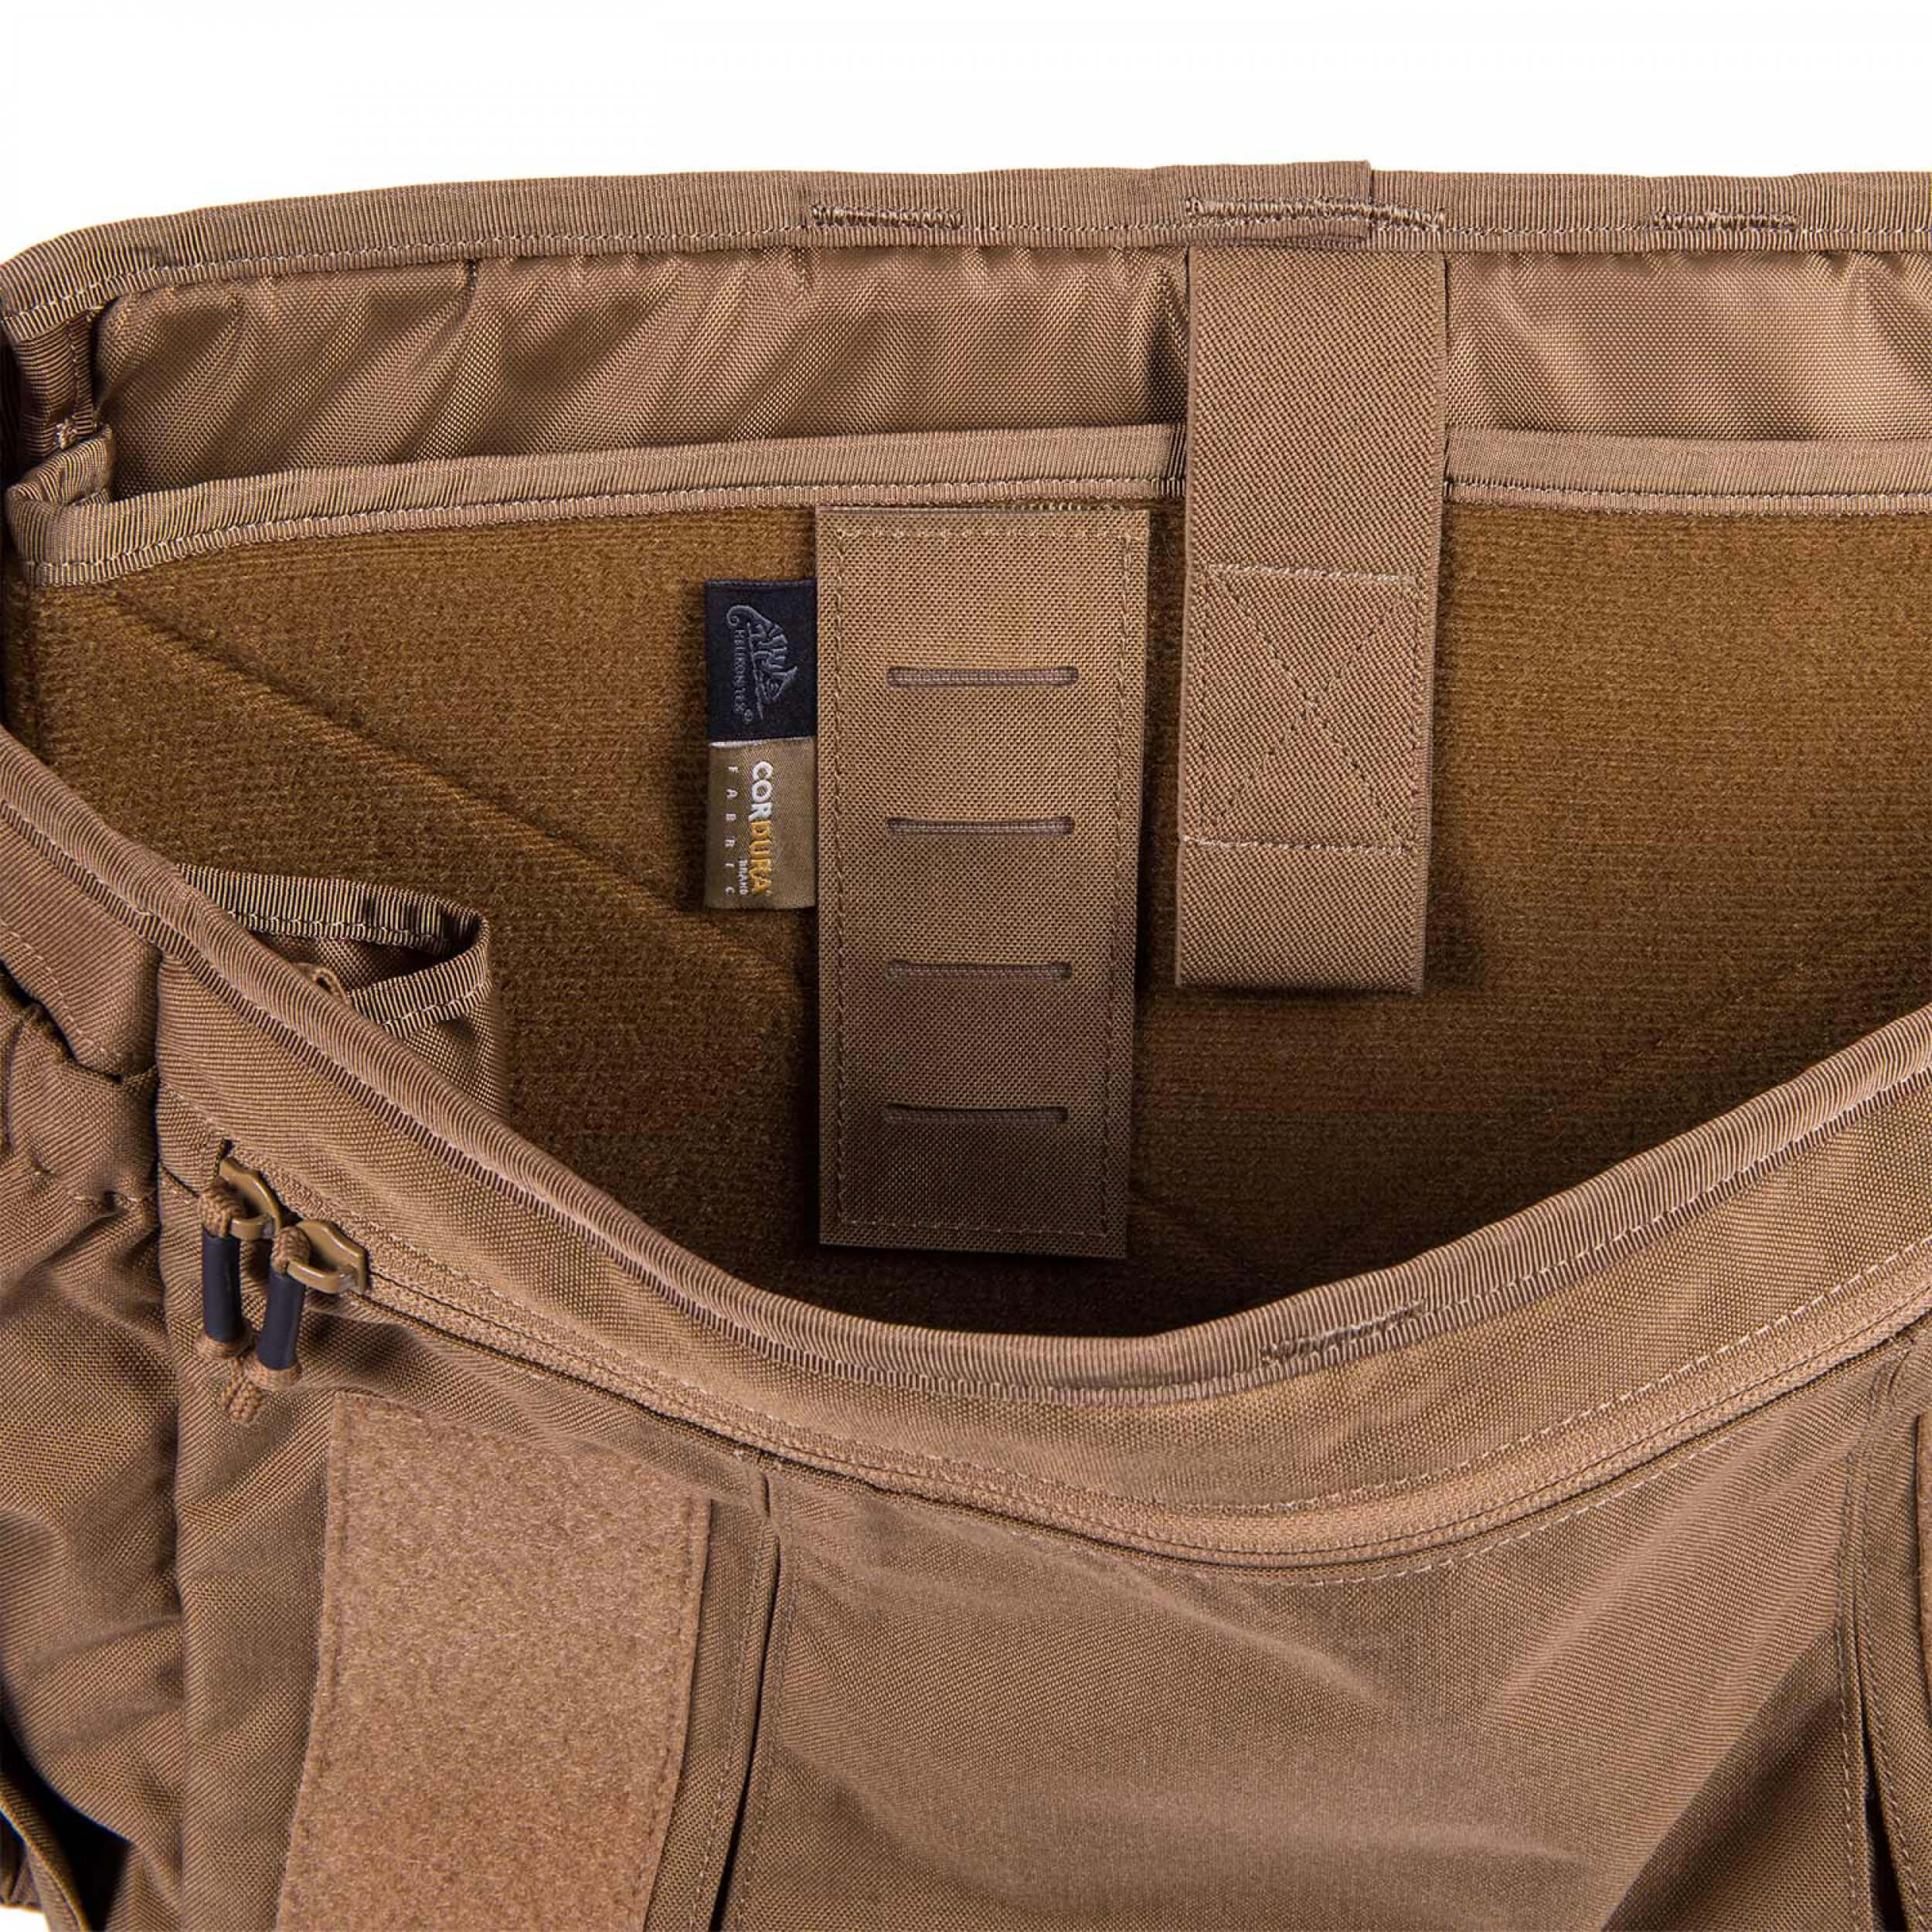 Helikon-Tex Molle Adapter Insert 1 -Cordura- Coyote